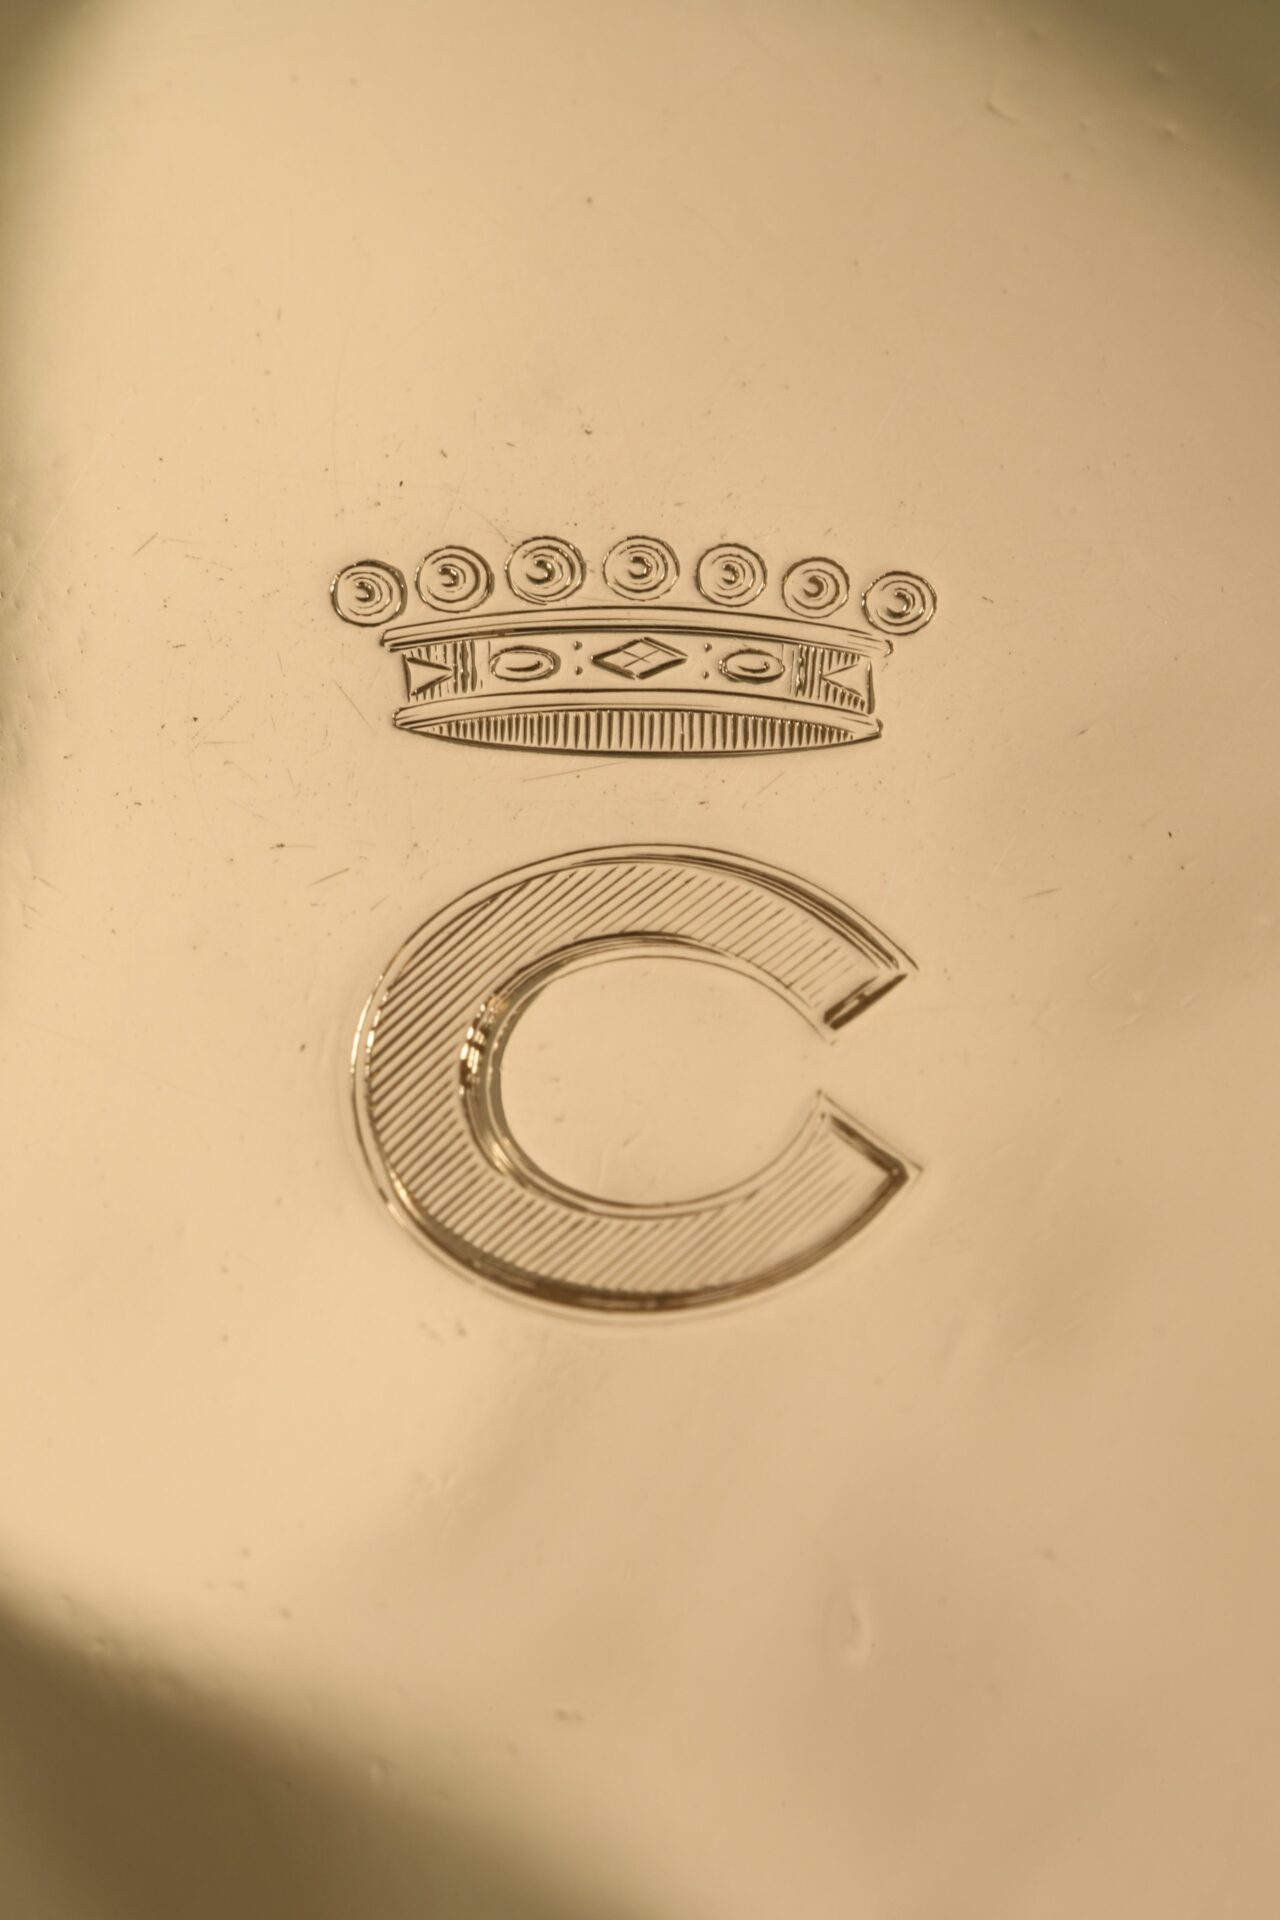 Image of Silver Pocket Barometer Compendium by Thornhill c1899 showing viscounts coronet and initial C